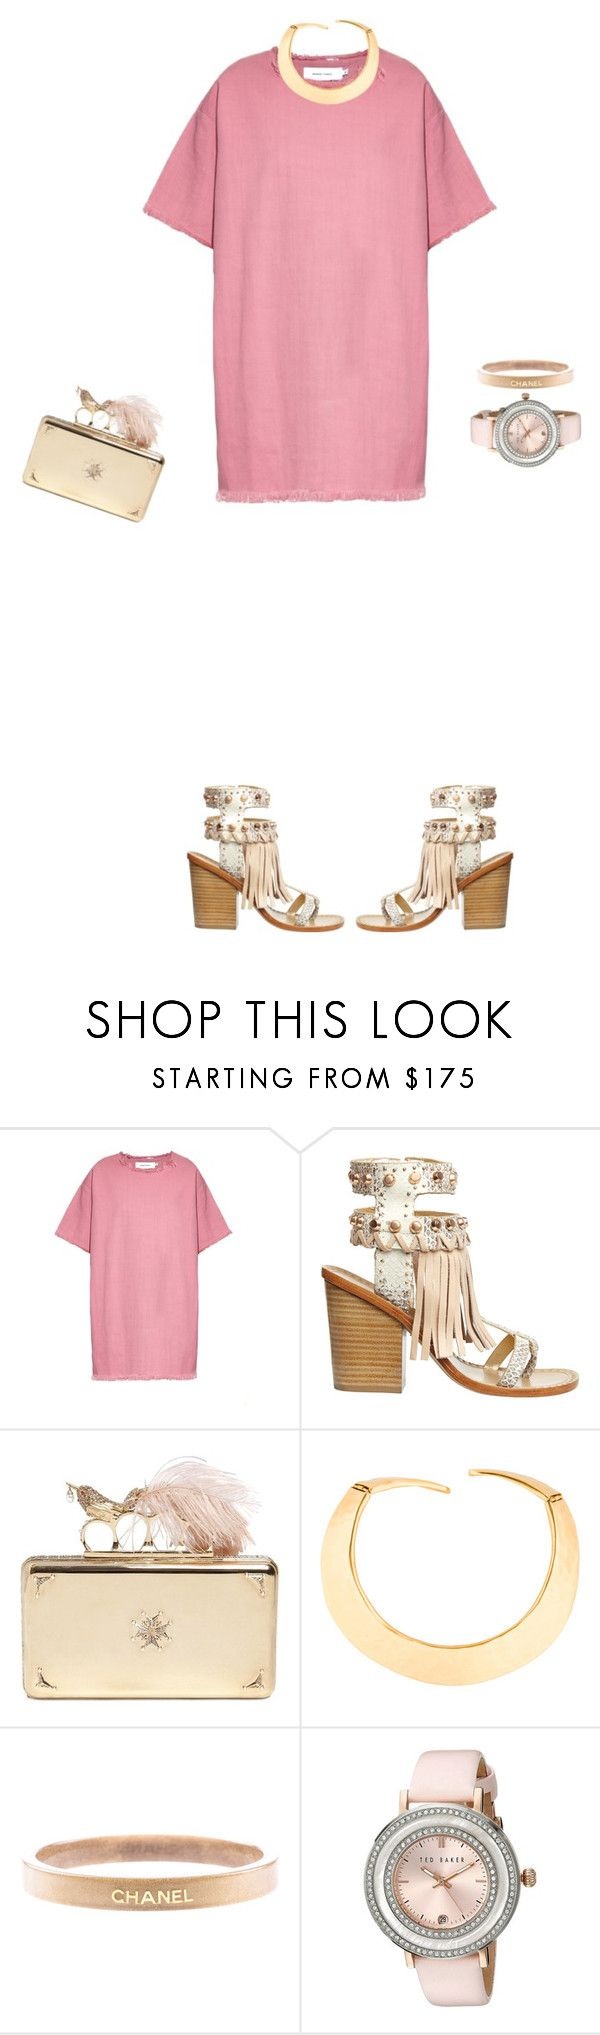 """""""Spring is coming"""" by theclothesmind on Polyvore featuring Marques'Almeida, Ivy Kirzhner, Alexander McQueen, Givenchy, Chanel and Ted Baker"""